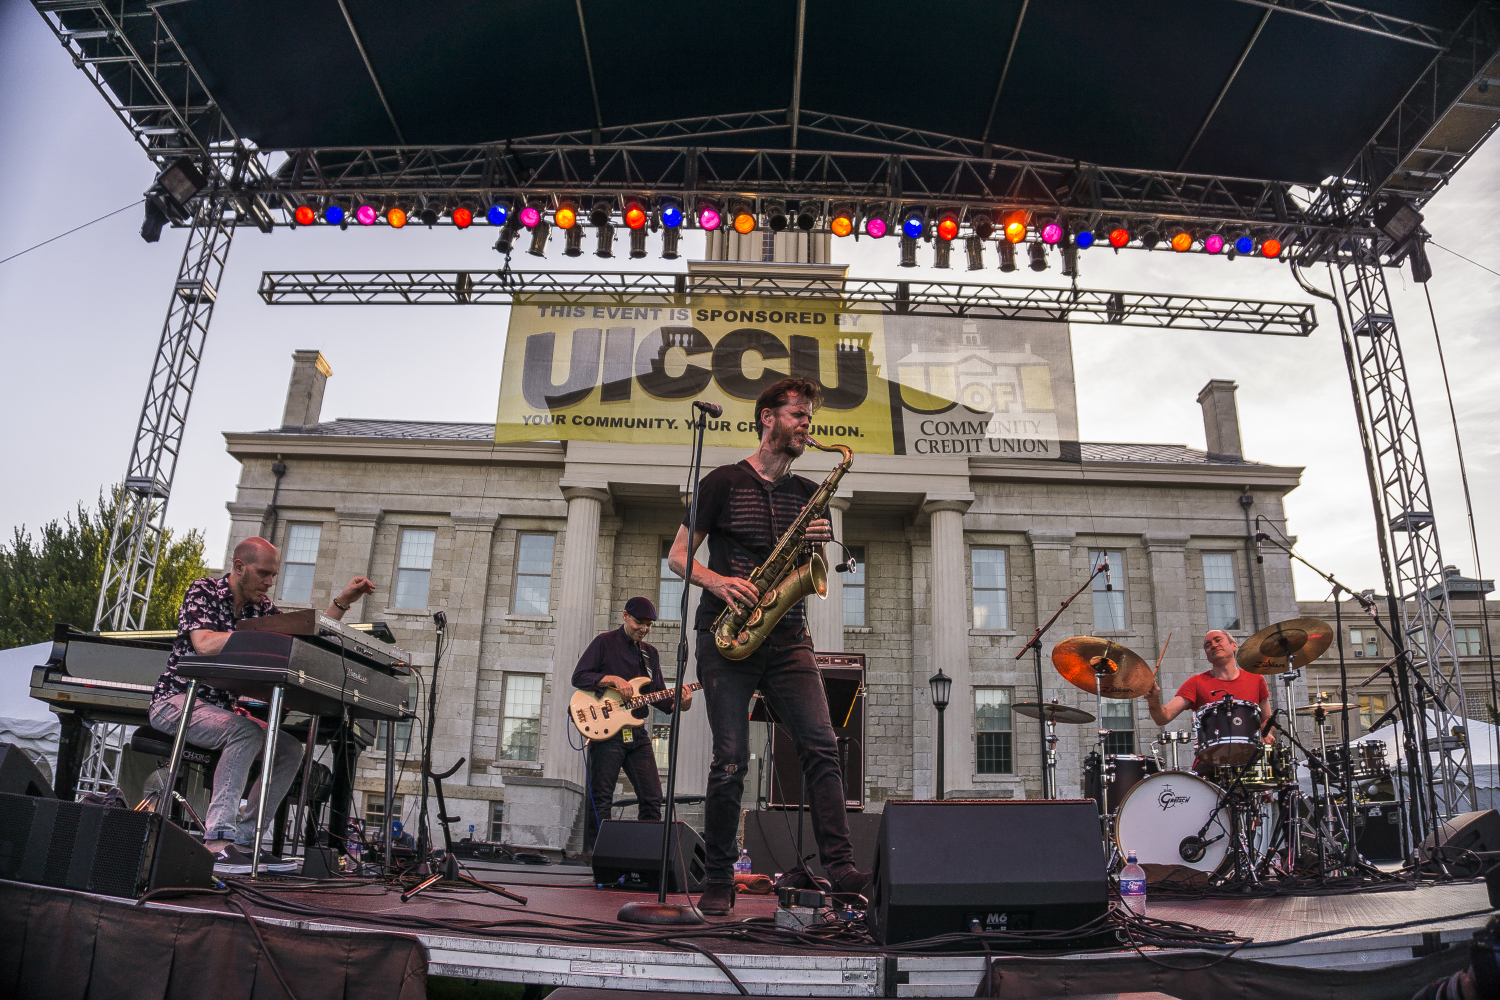 The Danny McCaslin Group performs on the main stage for the 2017 Jazz Fest on Sunday, July 2nd, 2017. Jazz Fest has been hosted by Summer of the Arts since 2005. (James Year/Daily Iowan)